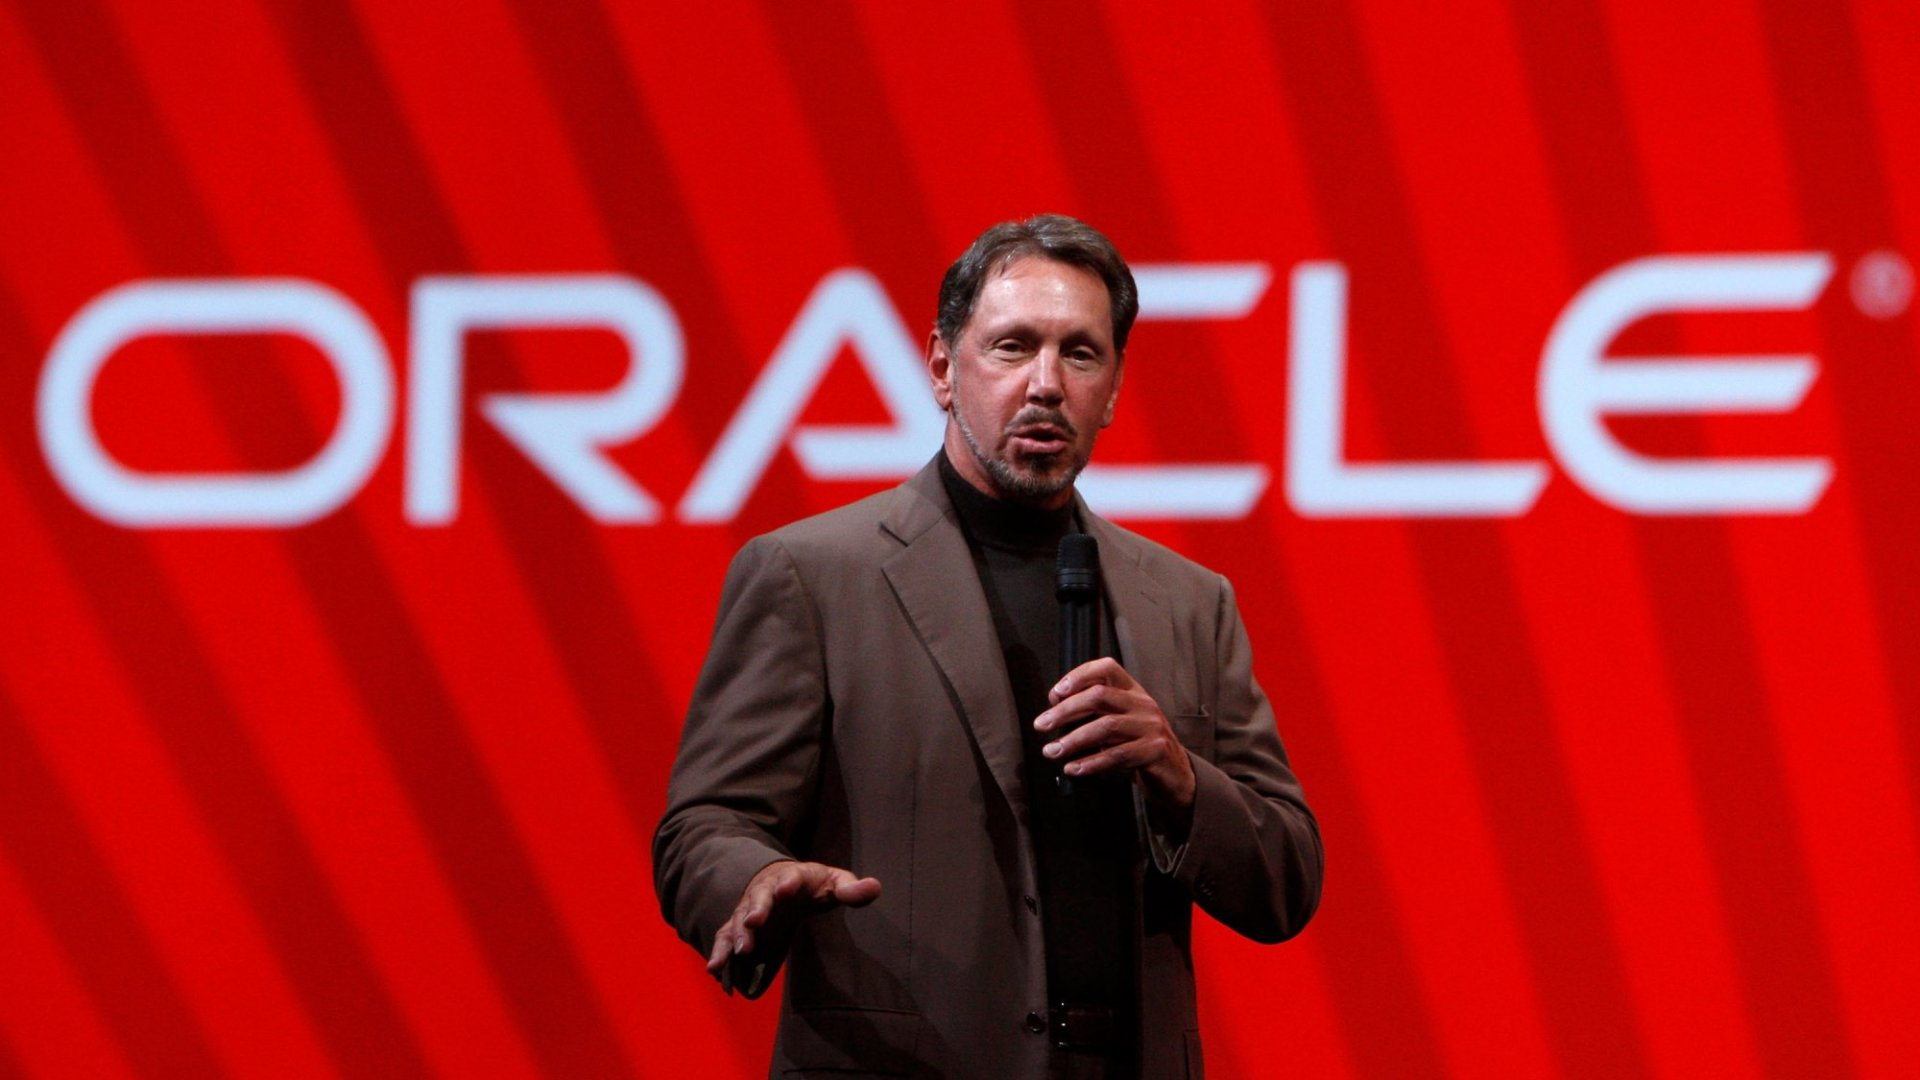 Oracle Agrees to Buy NetSuite for $9.3 Billion